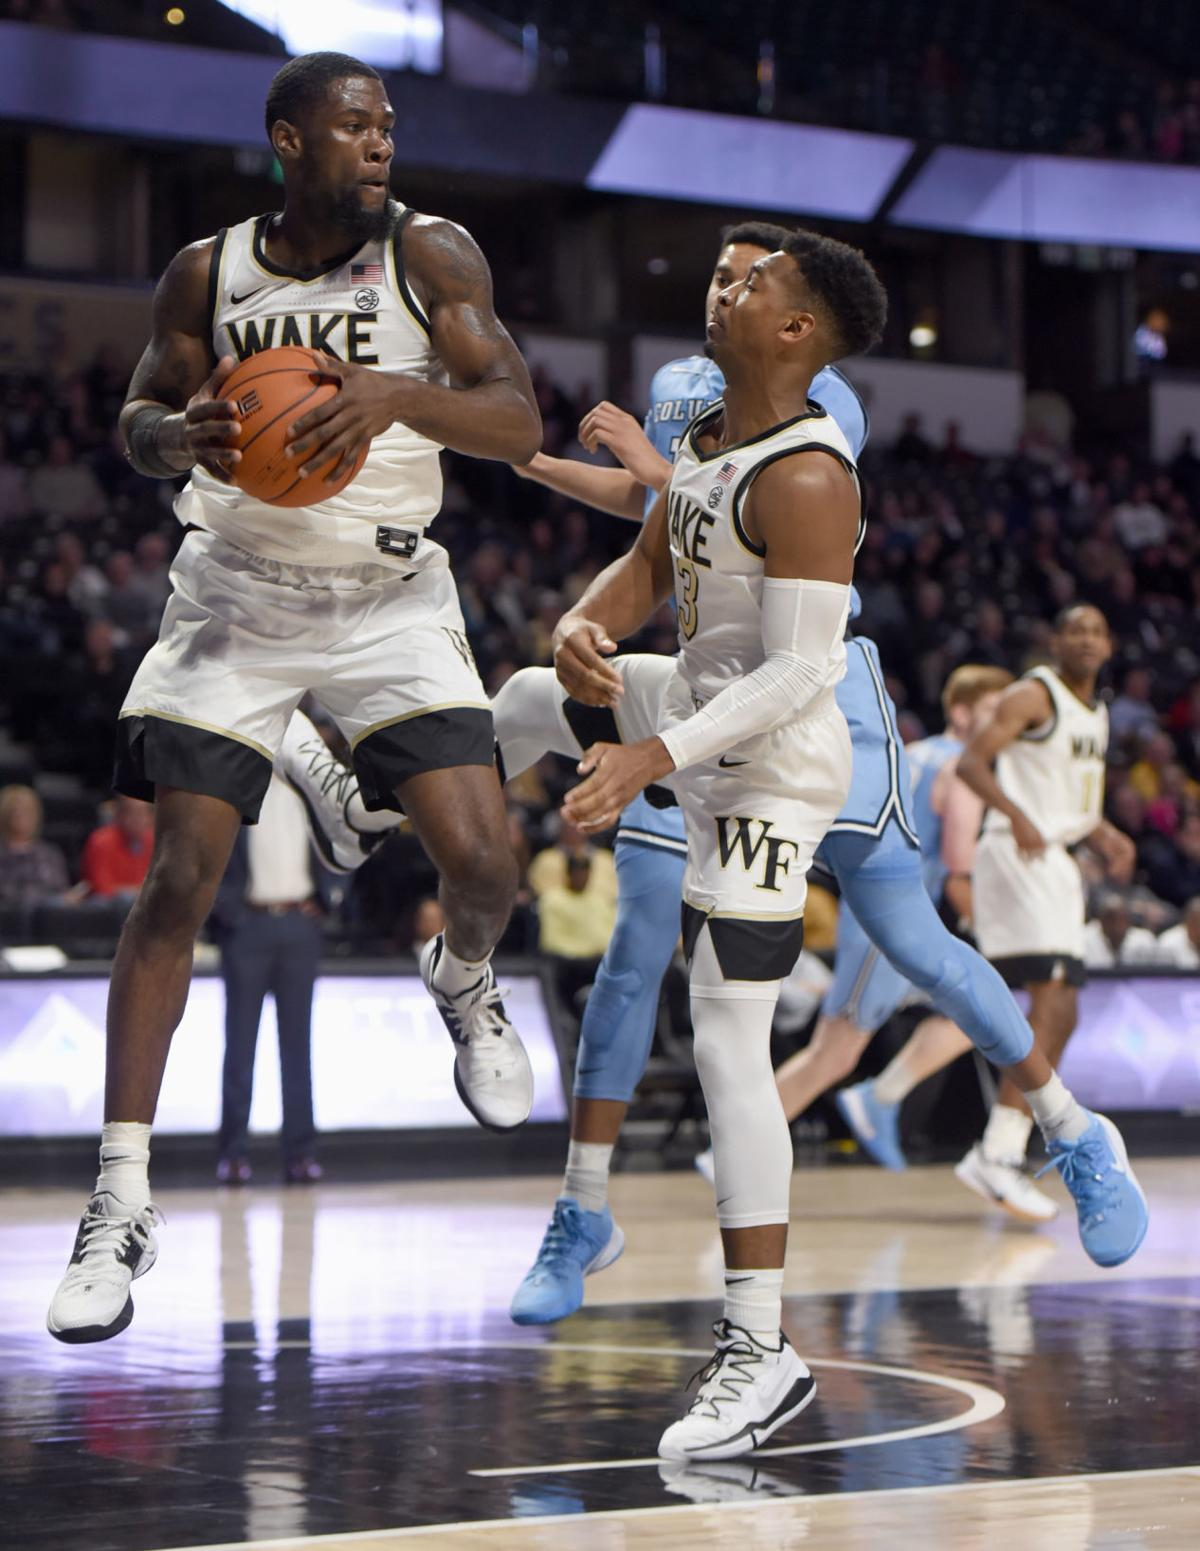 Columbia Wake Forest NCAA basketball